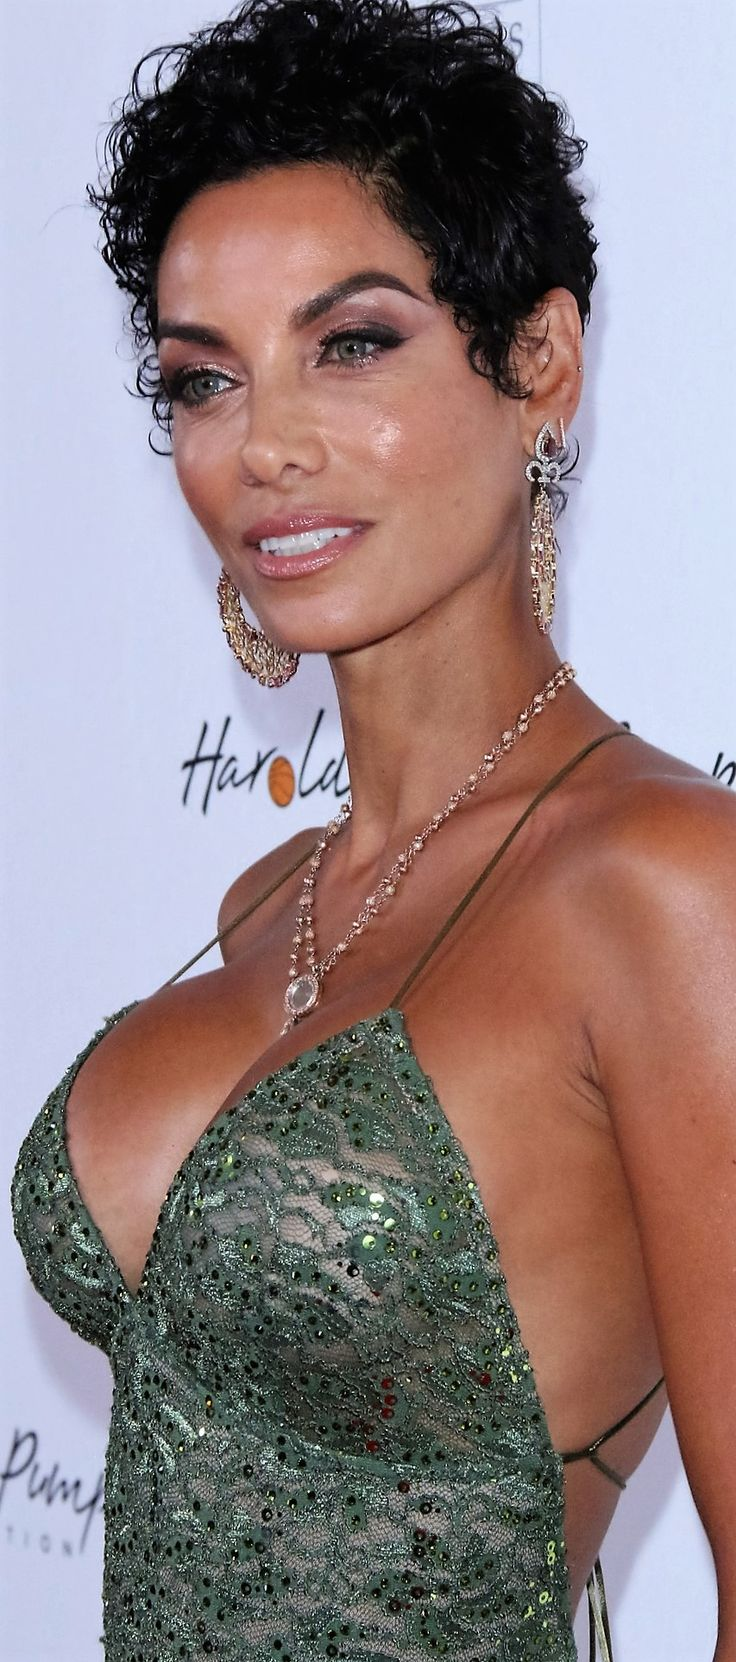 nicole mitchell murphy net worth